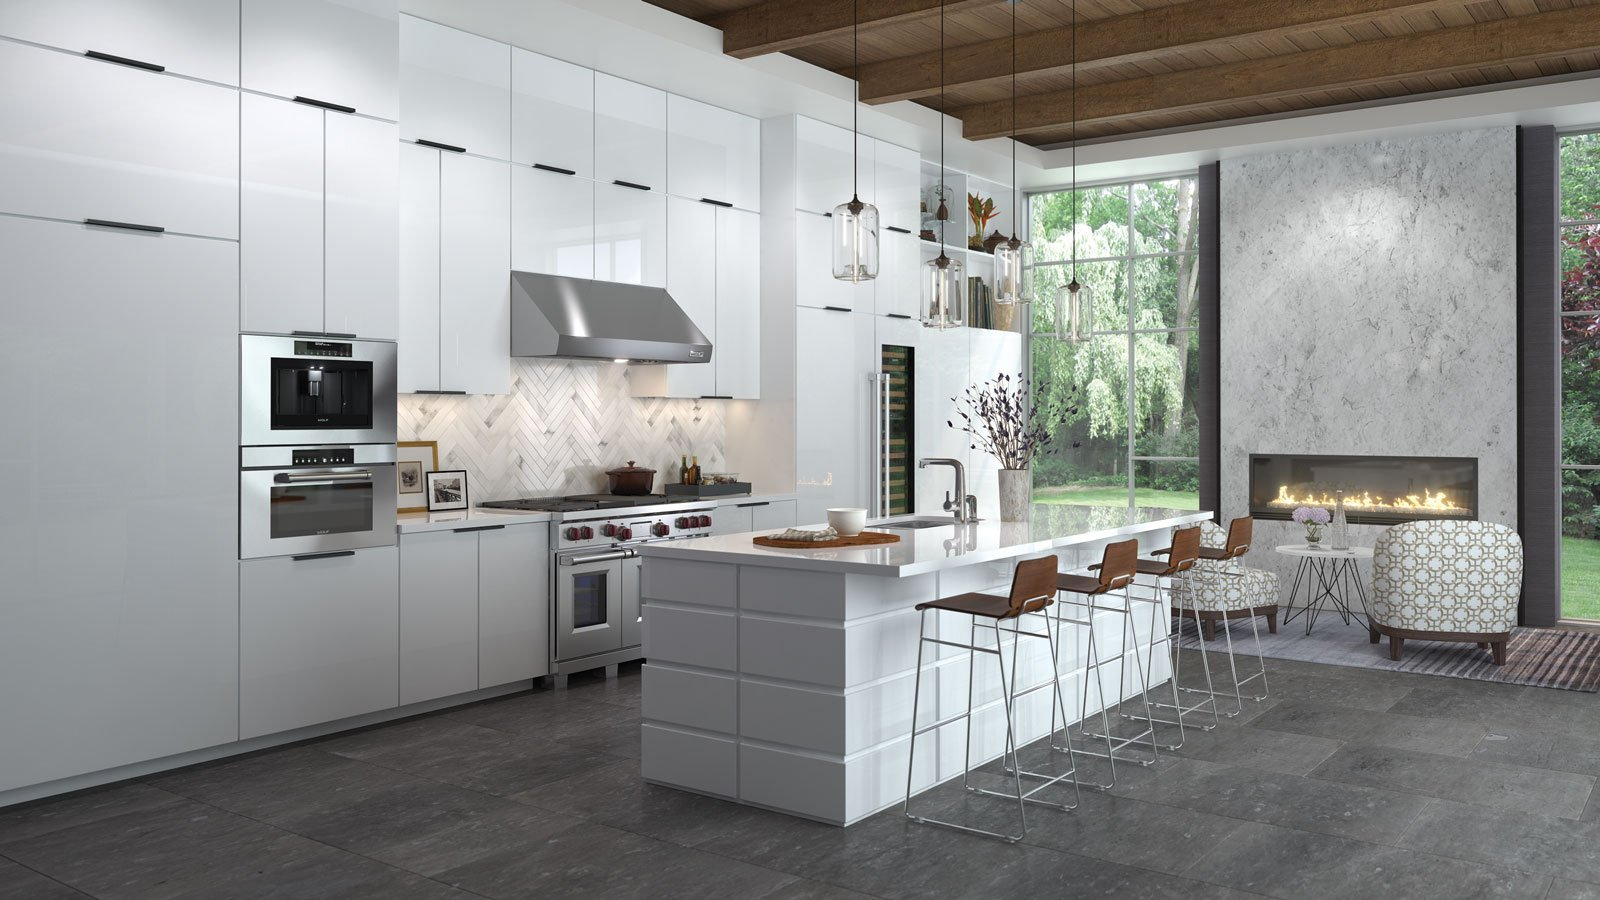 A Groundbreaking Partnership Between Florida Builder Appliances, Westar  Kitchen U0026 Bath And Standards Of Excellence, Monark Combines The Strengths  Of Three ...